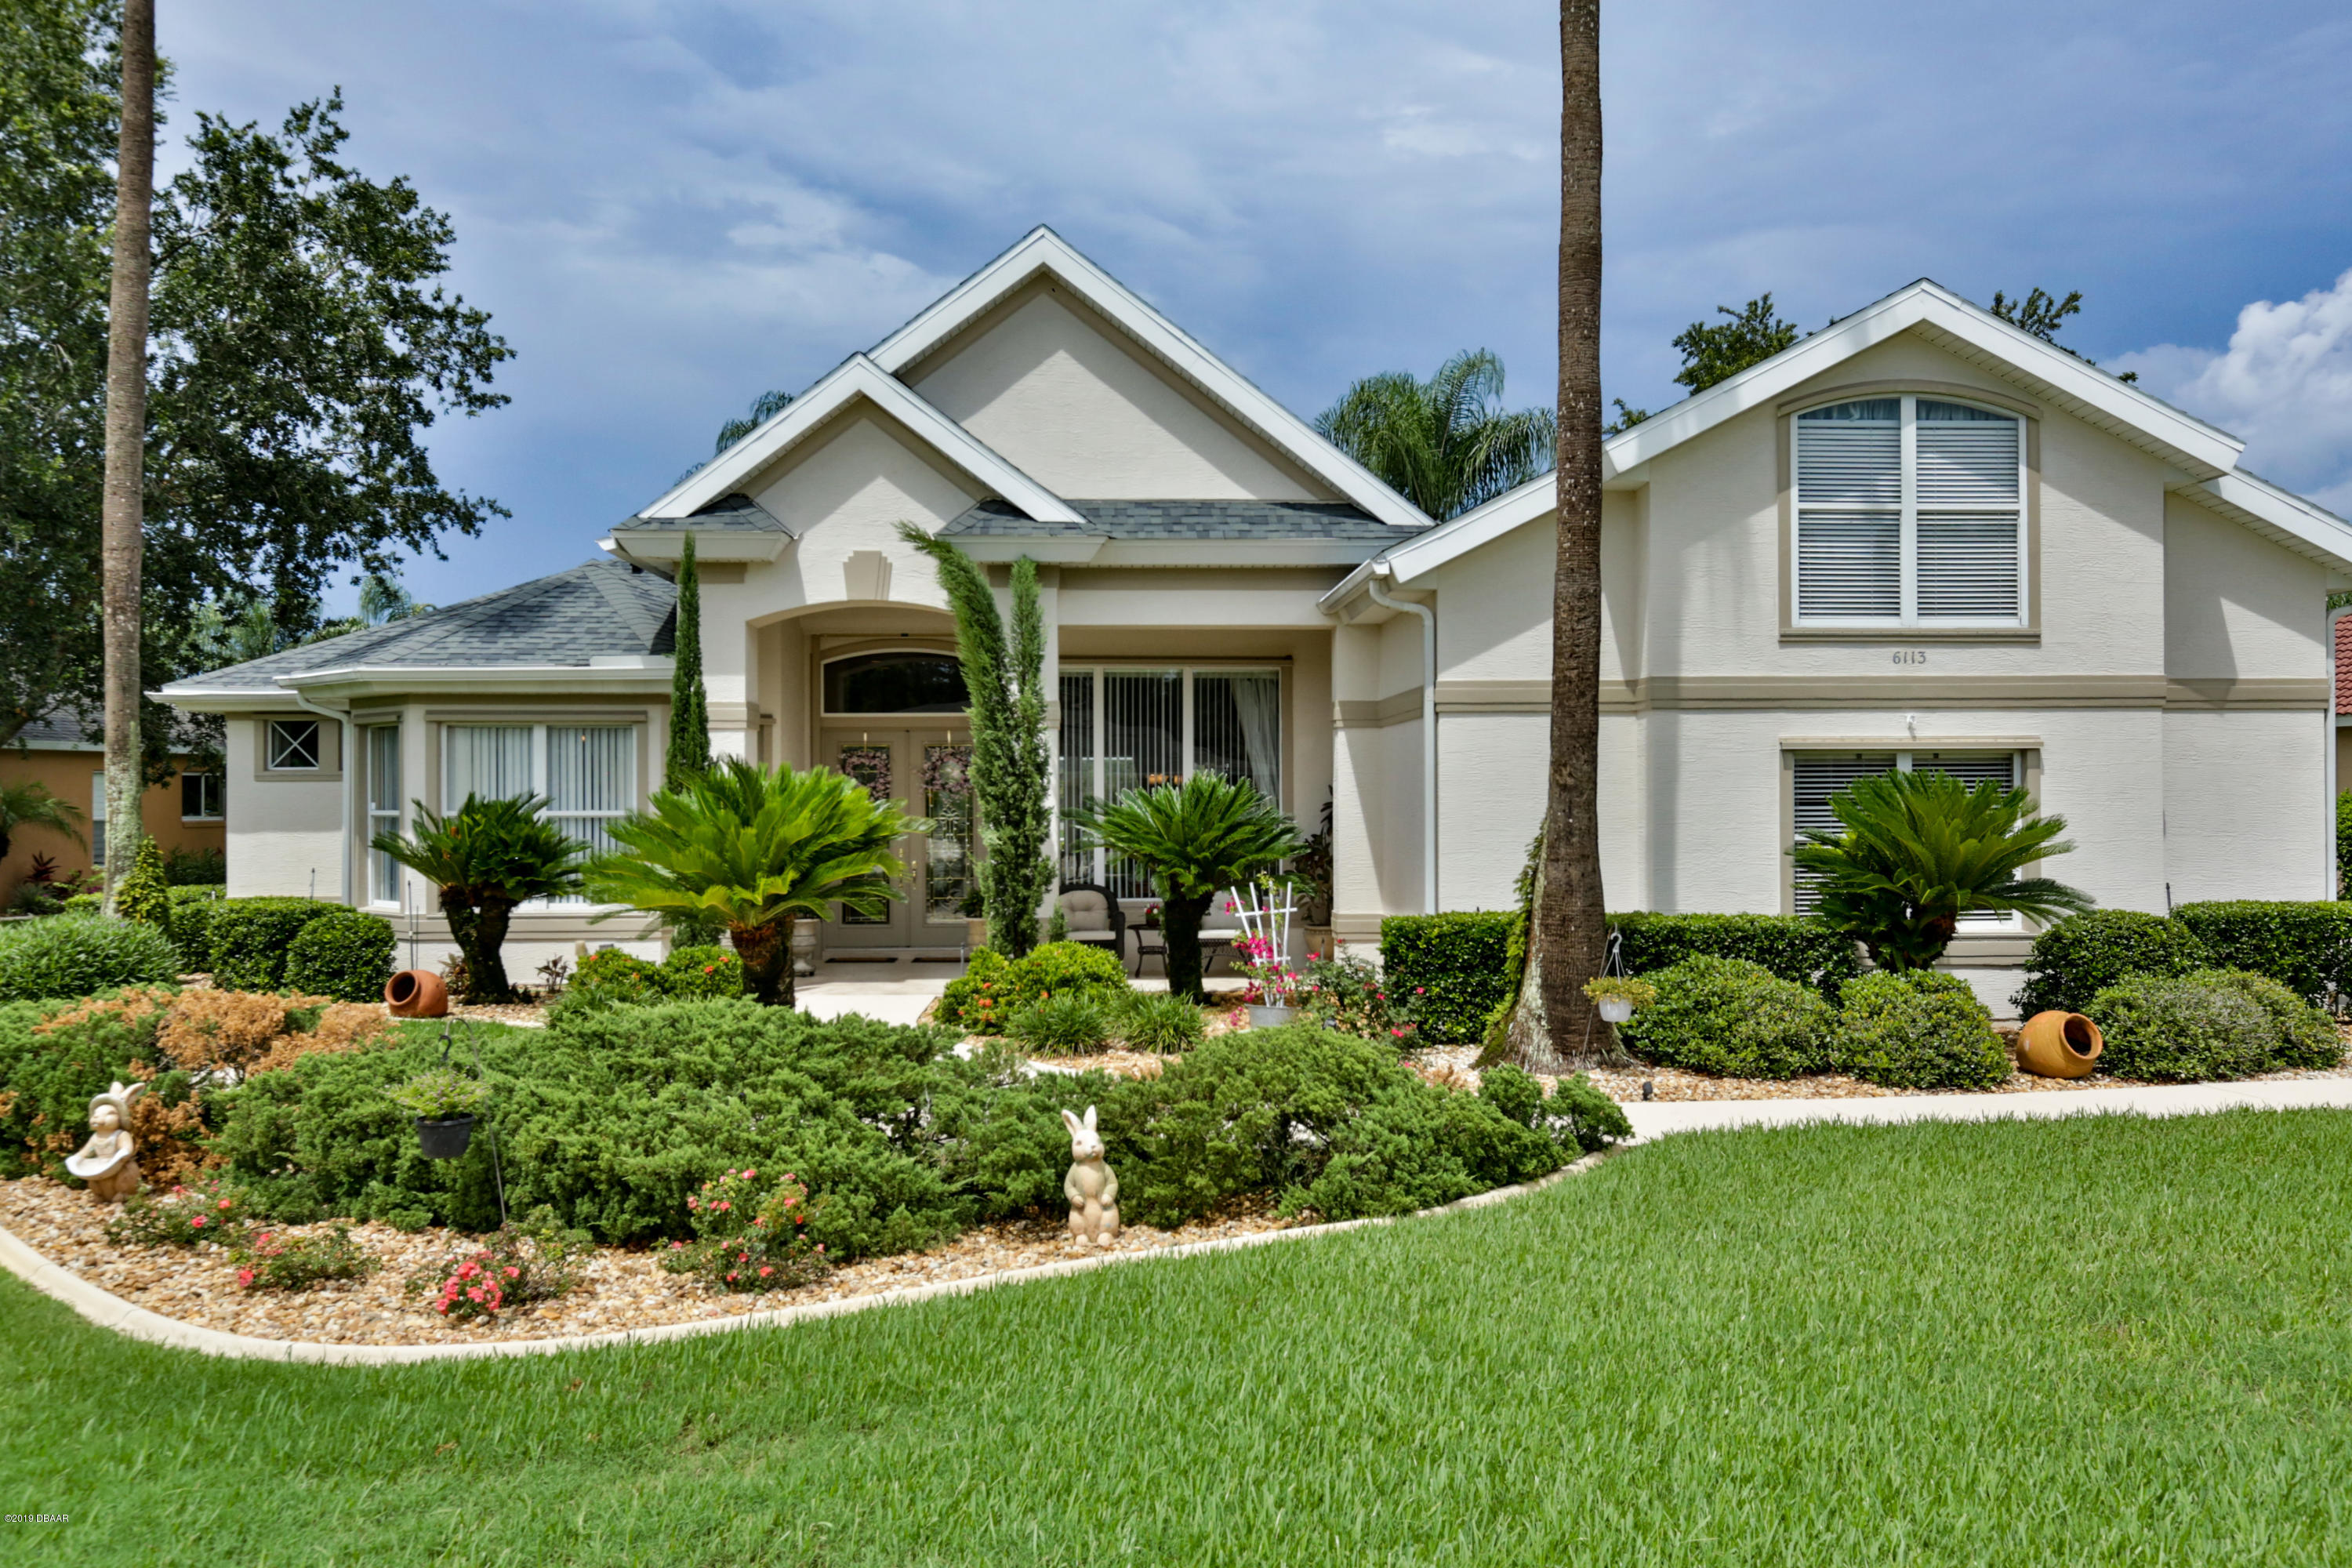 Photo of 6113 Sanctuary Garden Boulevard, Port Orange, FL 32128